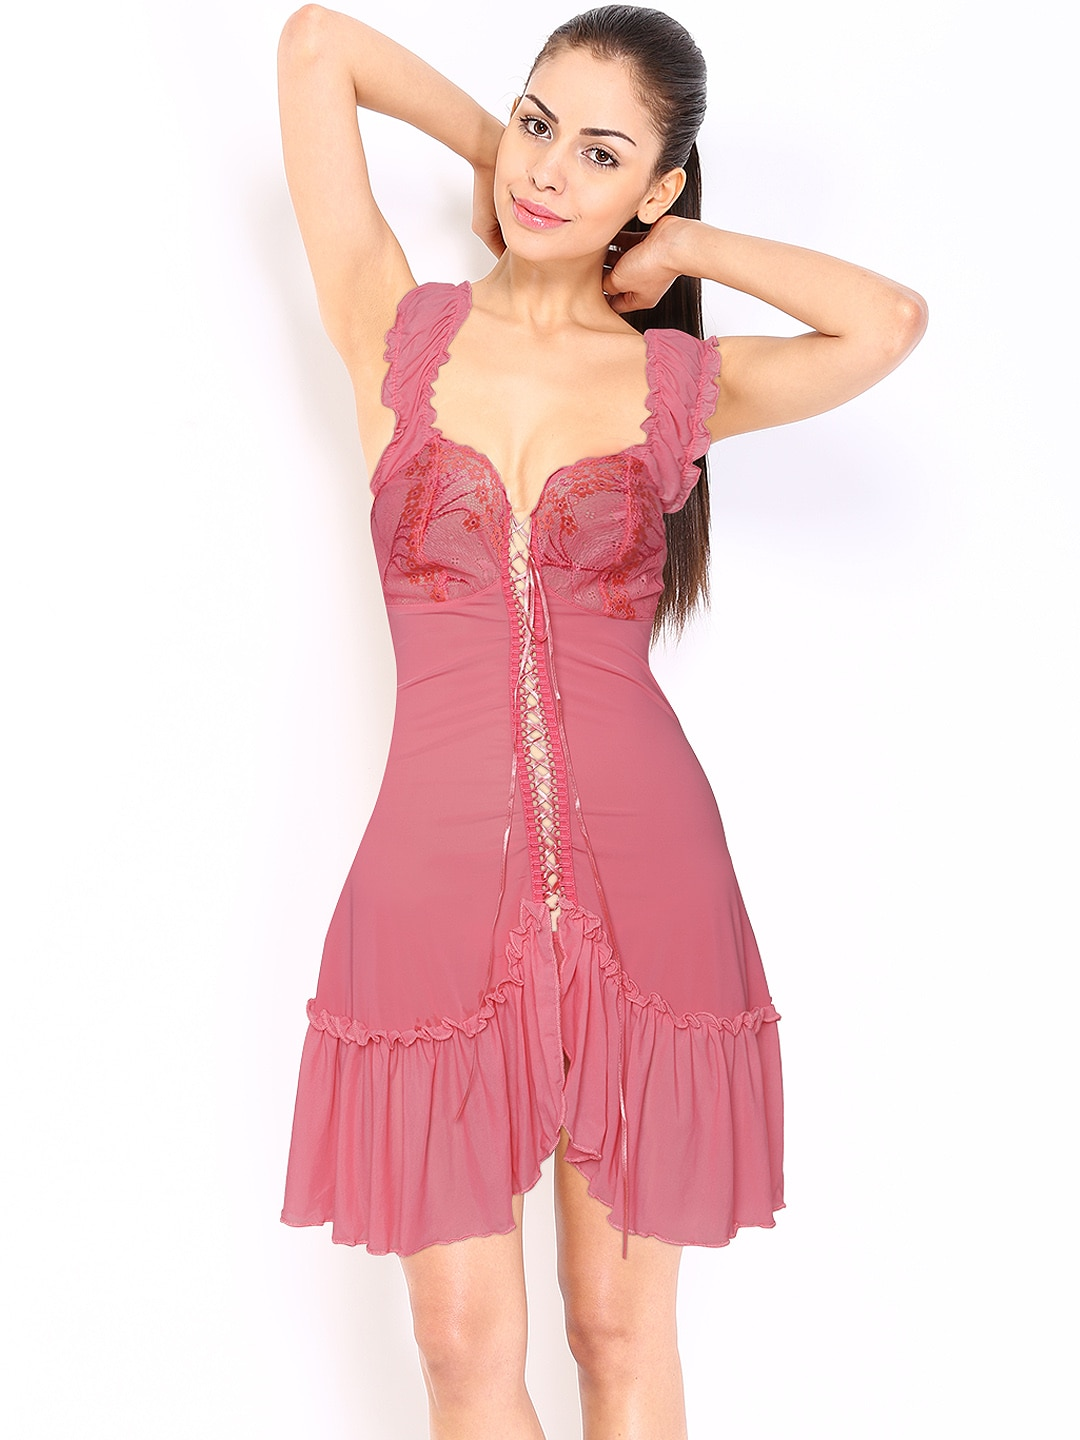 SDL by Sweet Dreams Pink Baby-Doll Nightdress BD54G5